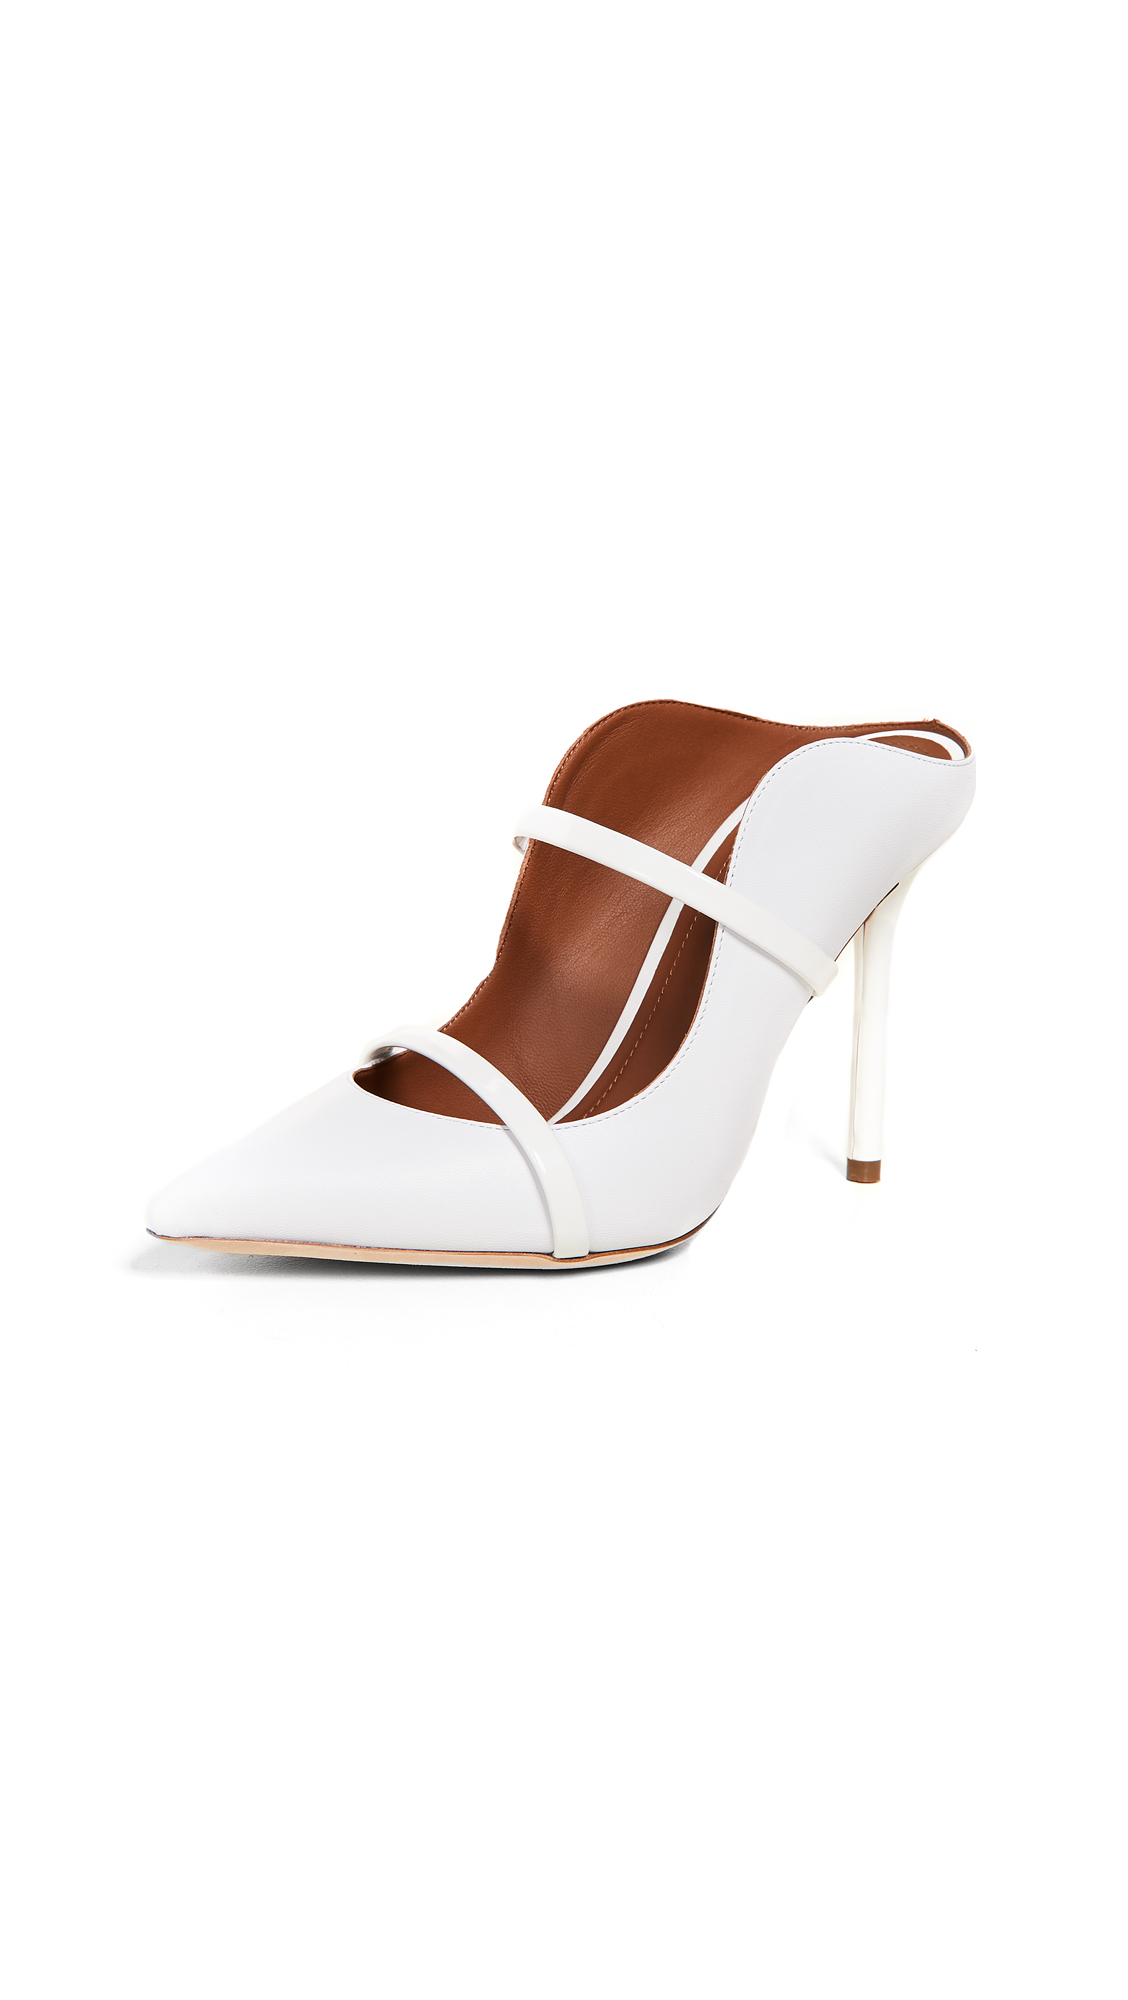 Malone Souliers by Roy Luwolt Maureen Mules - White/Optic White